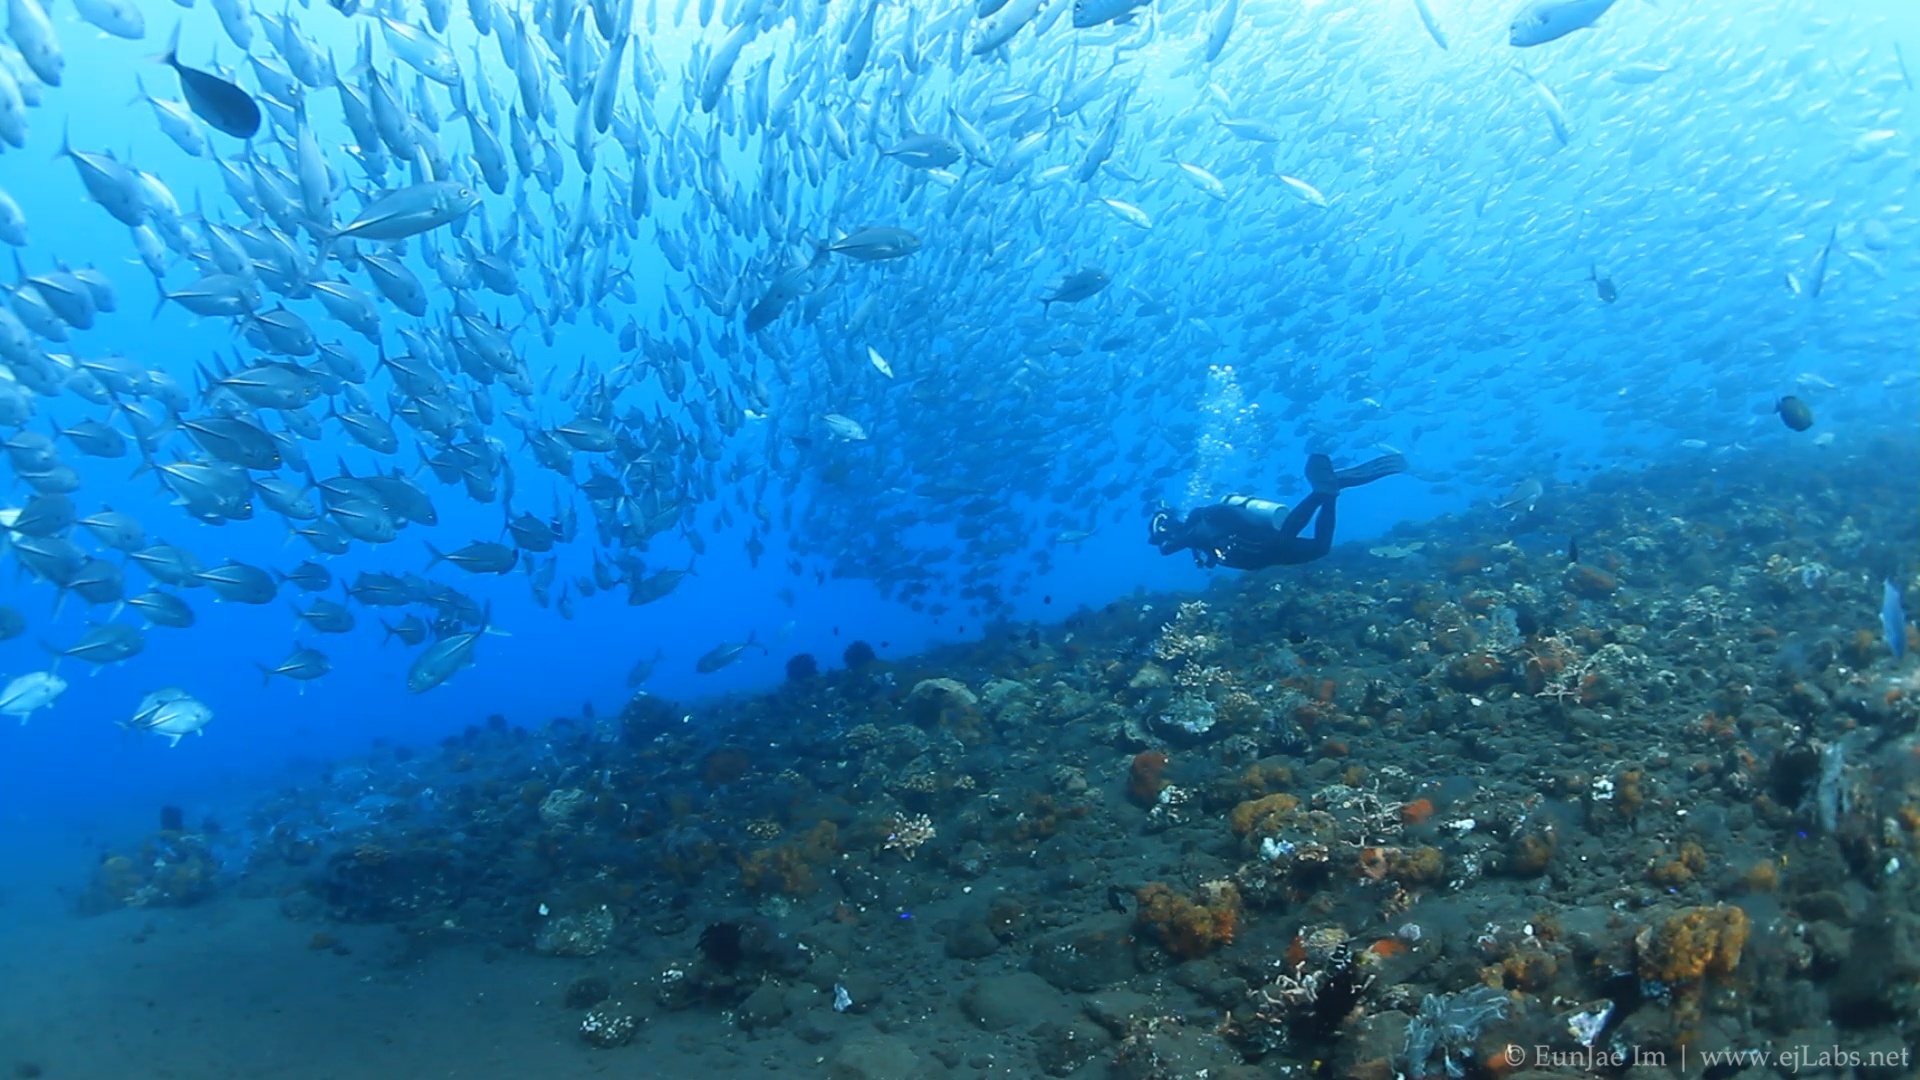 School of jacks in Tulamben, Bali